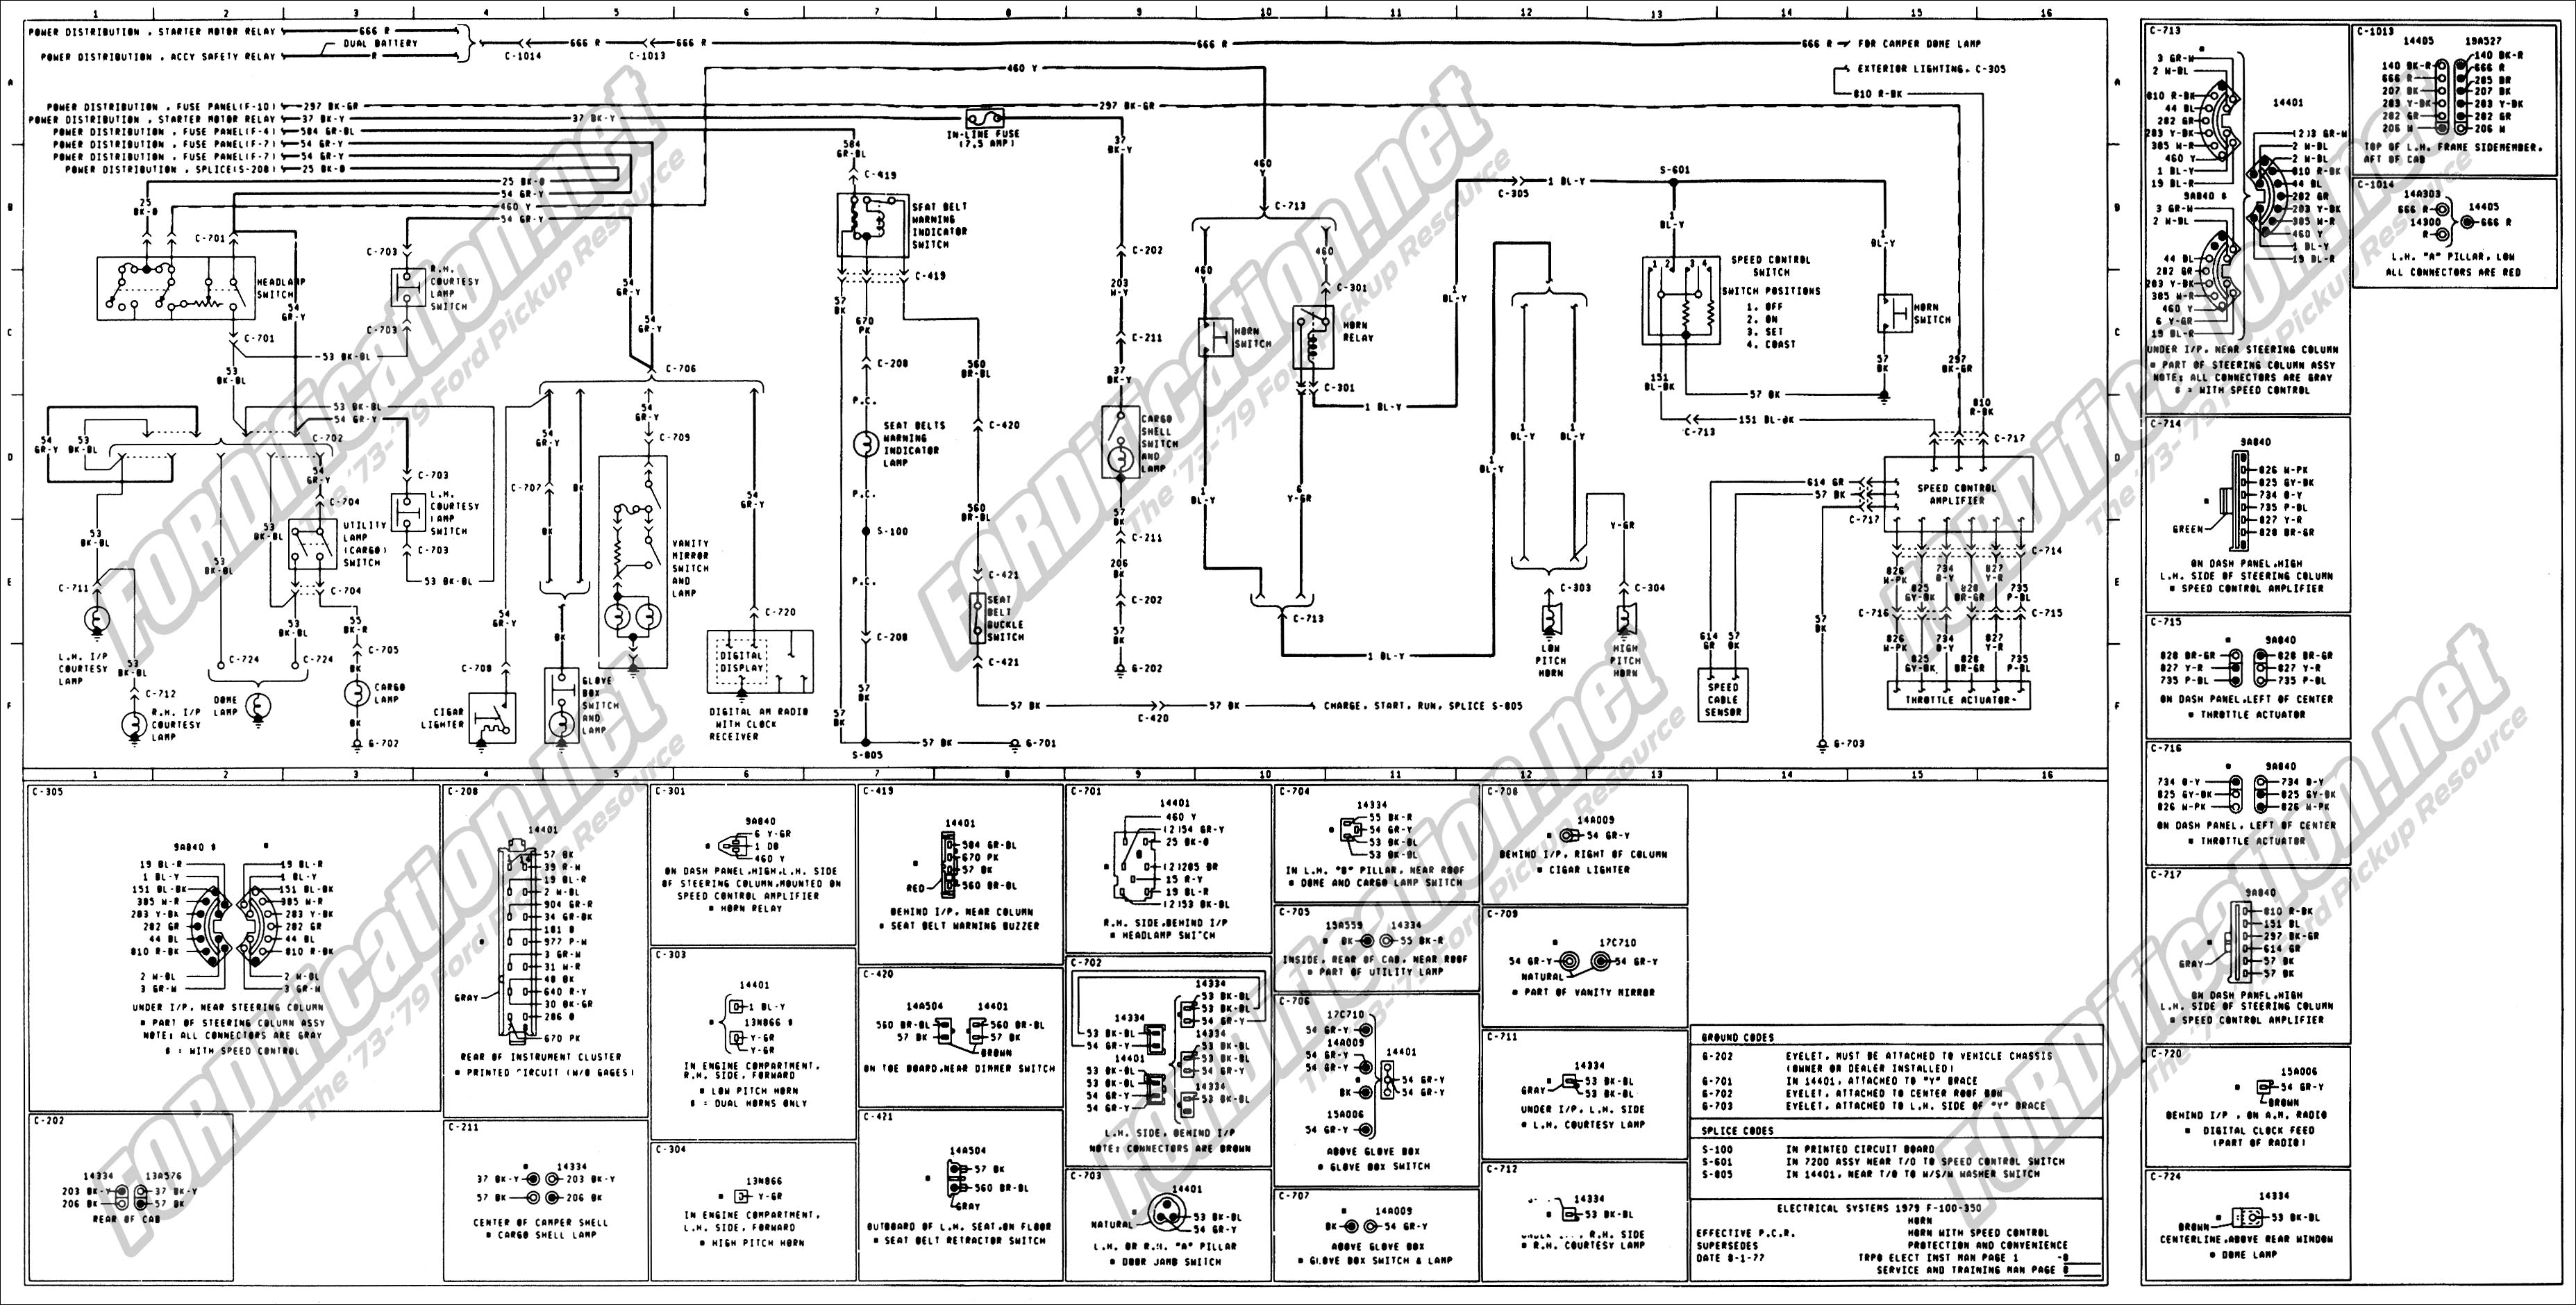 1977 Ford F 150 Blower Motor Wiring Diagram Library Kioti Tractor Ck25 Ignition Diagrams